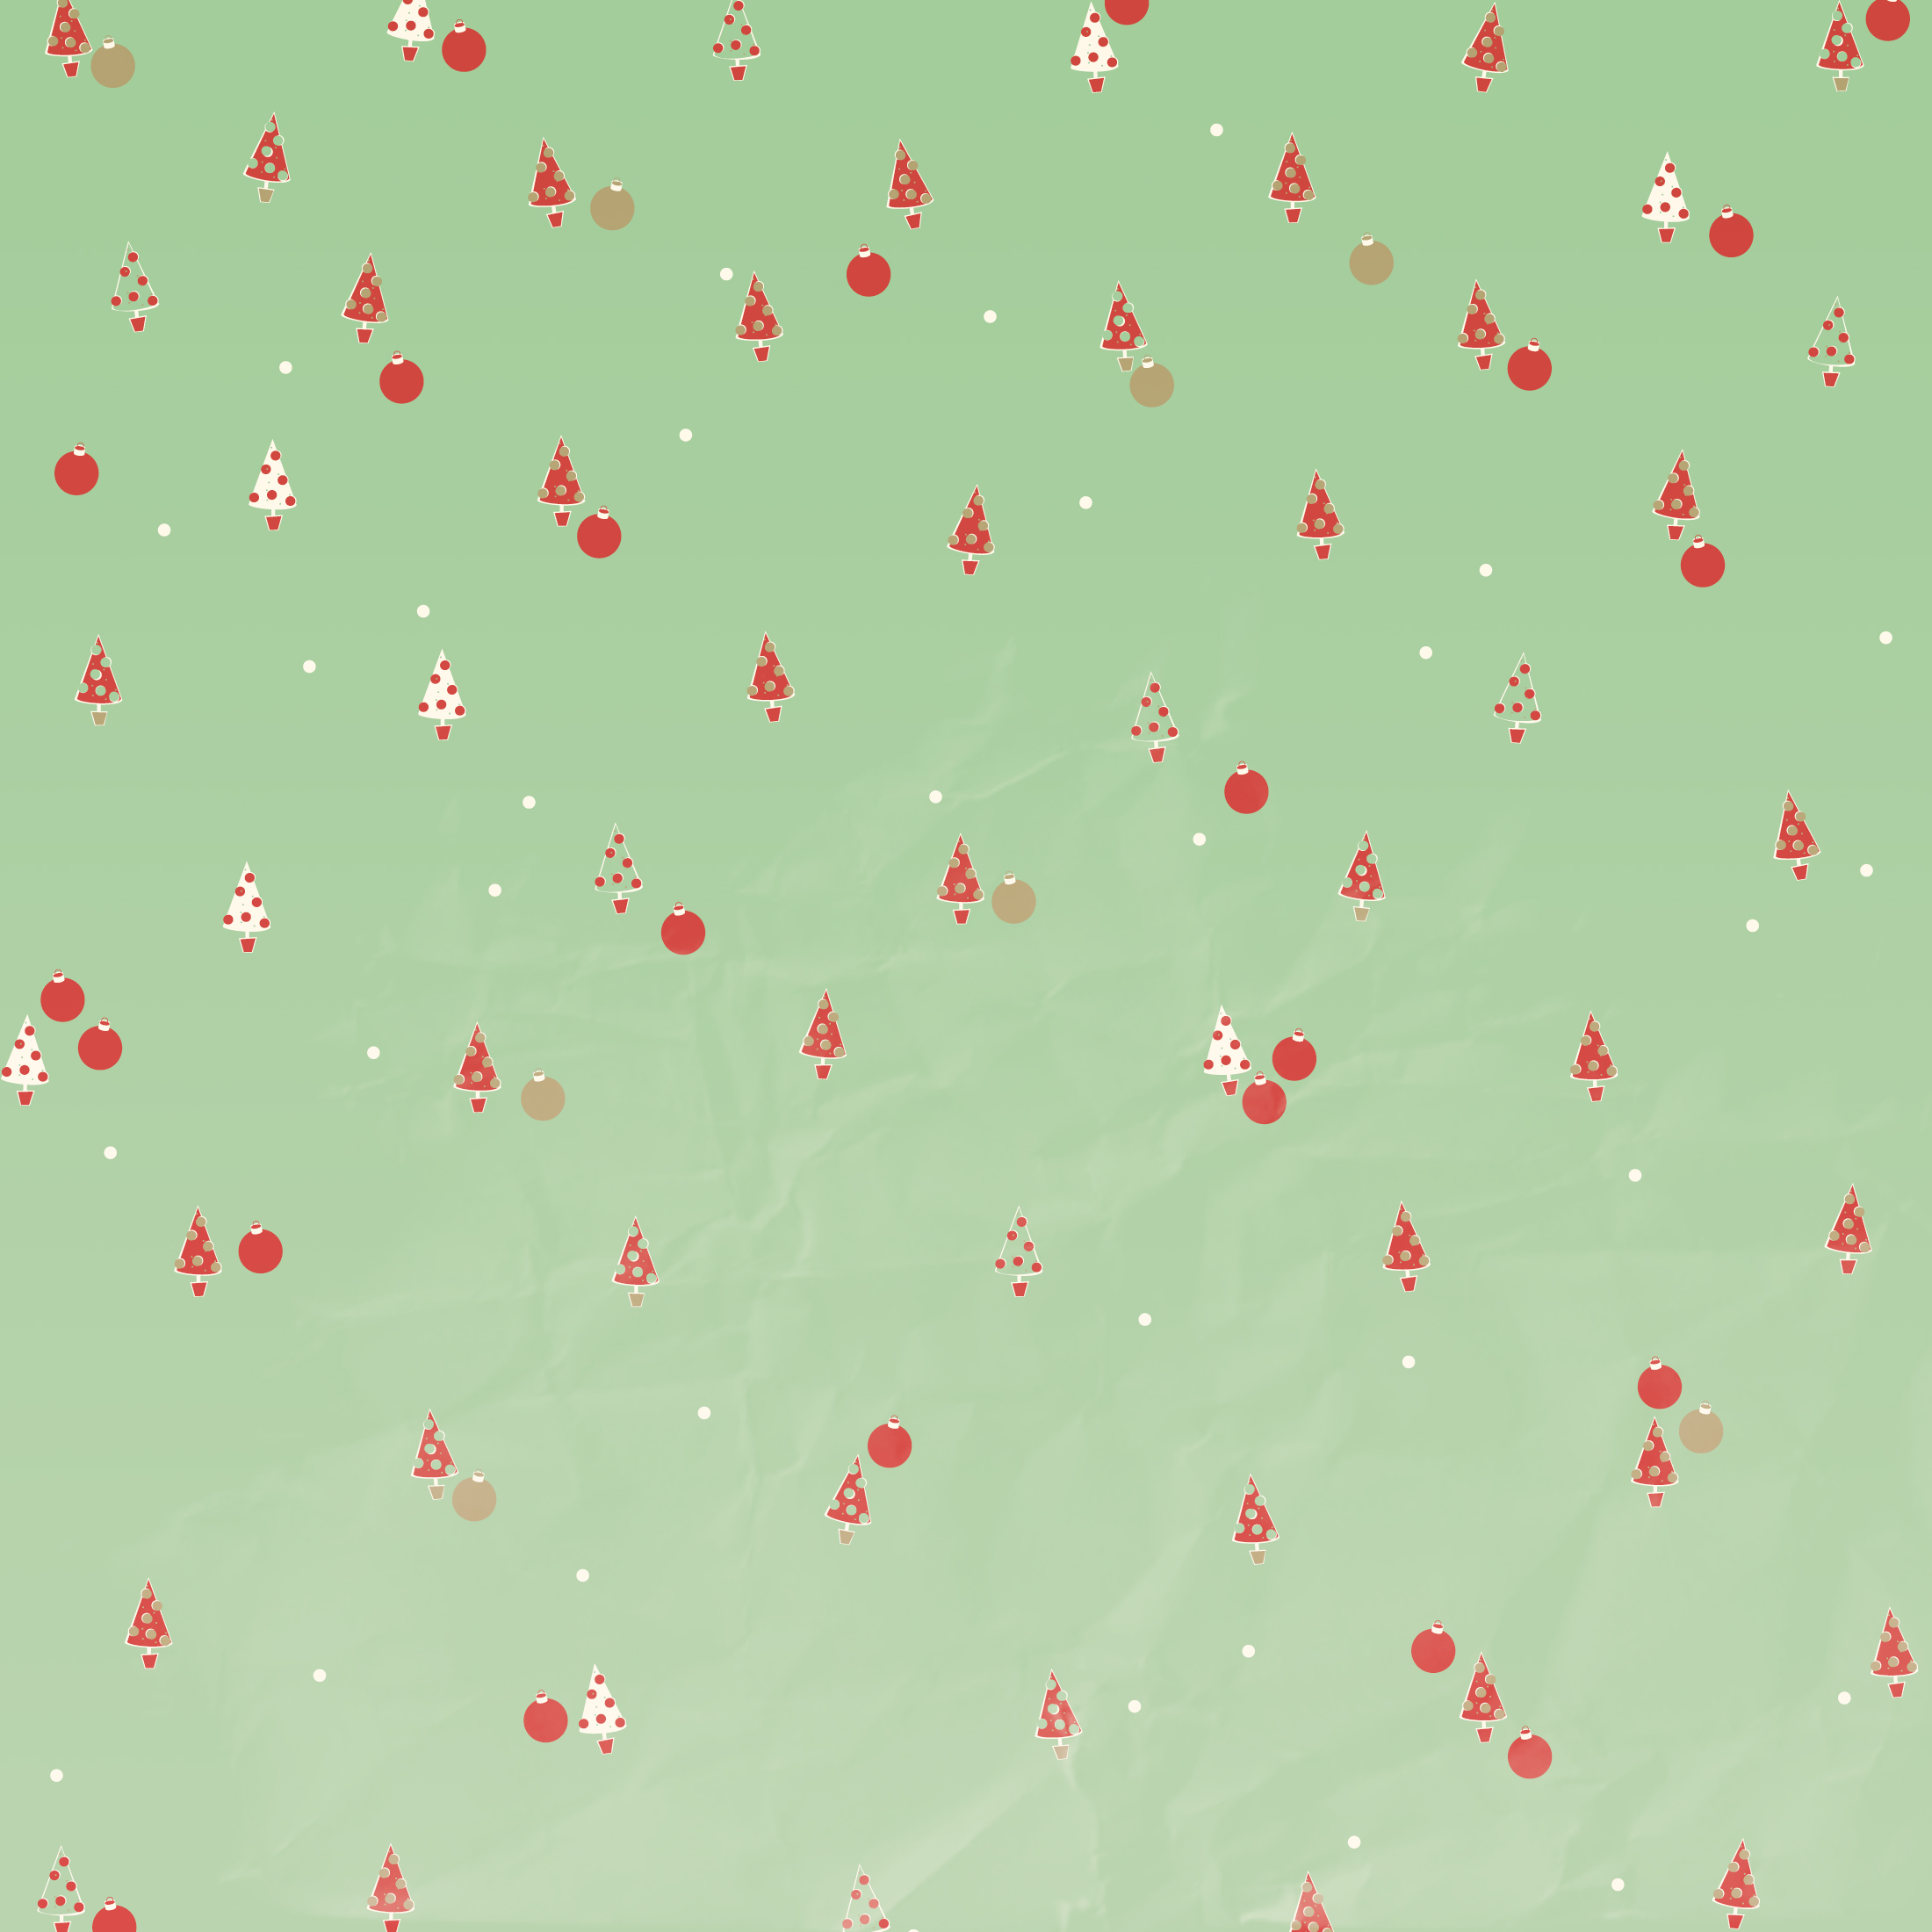 Group Of Wallpaper Cute Christmas Wallpapers